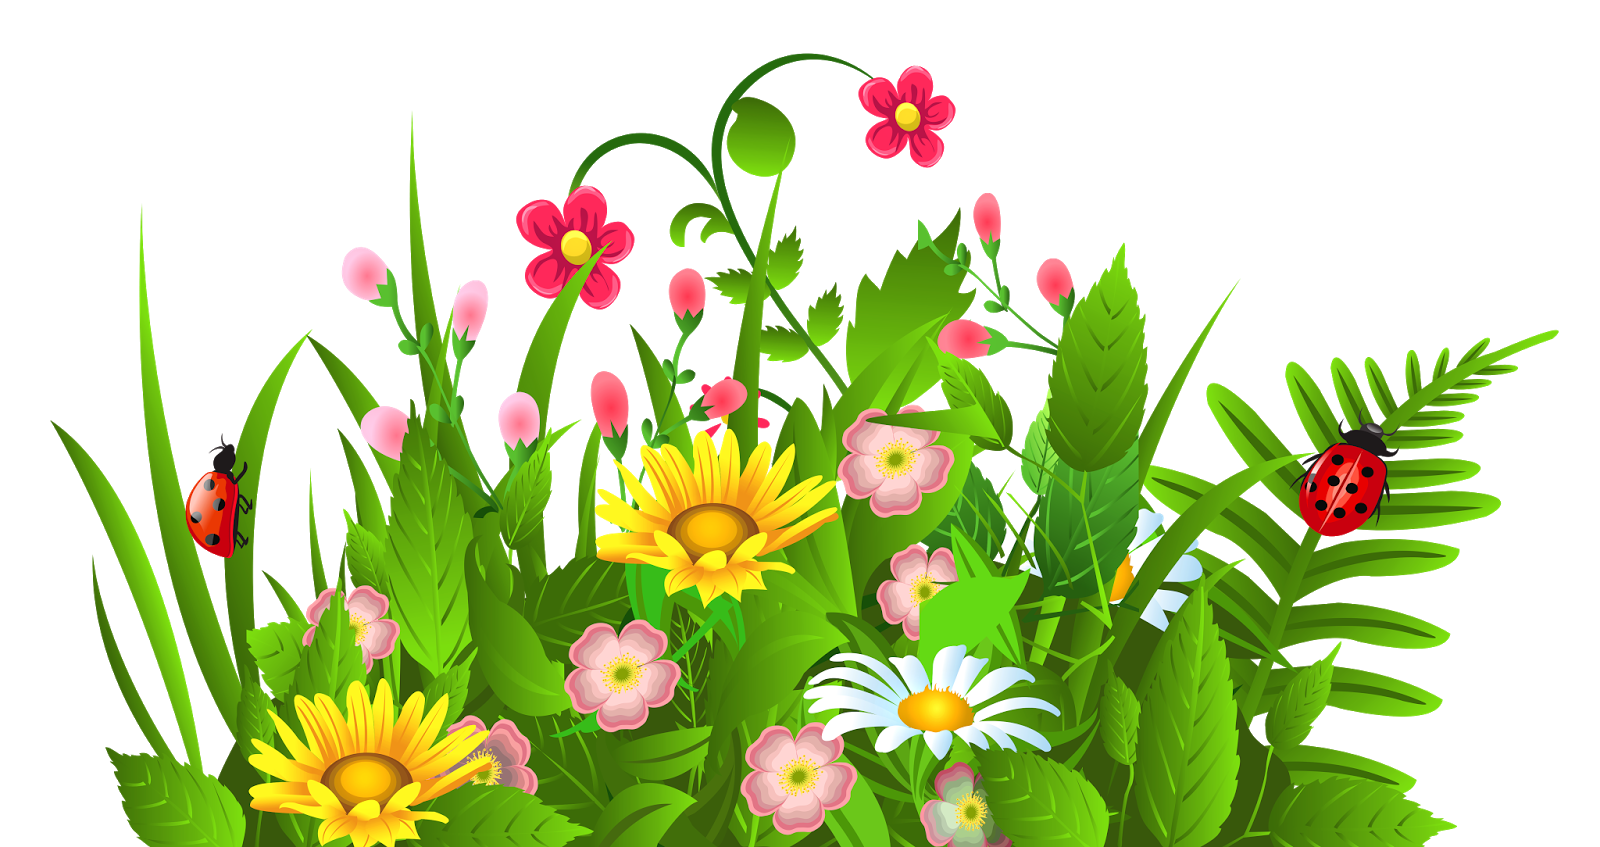 Clipart map garden, Clipart map garden Transparent FREE for ...